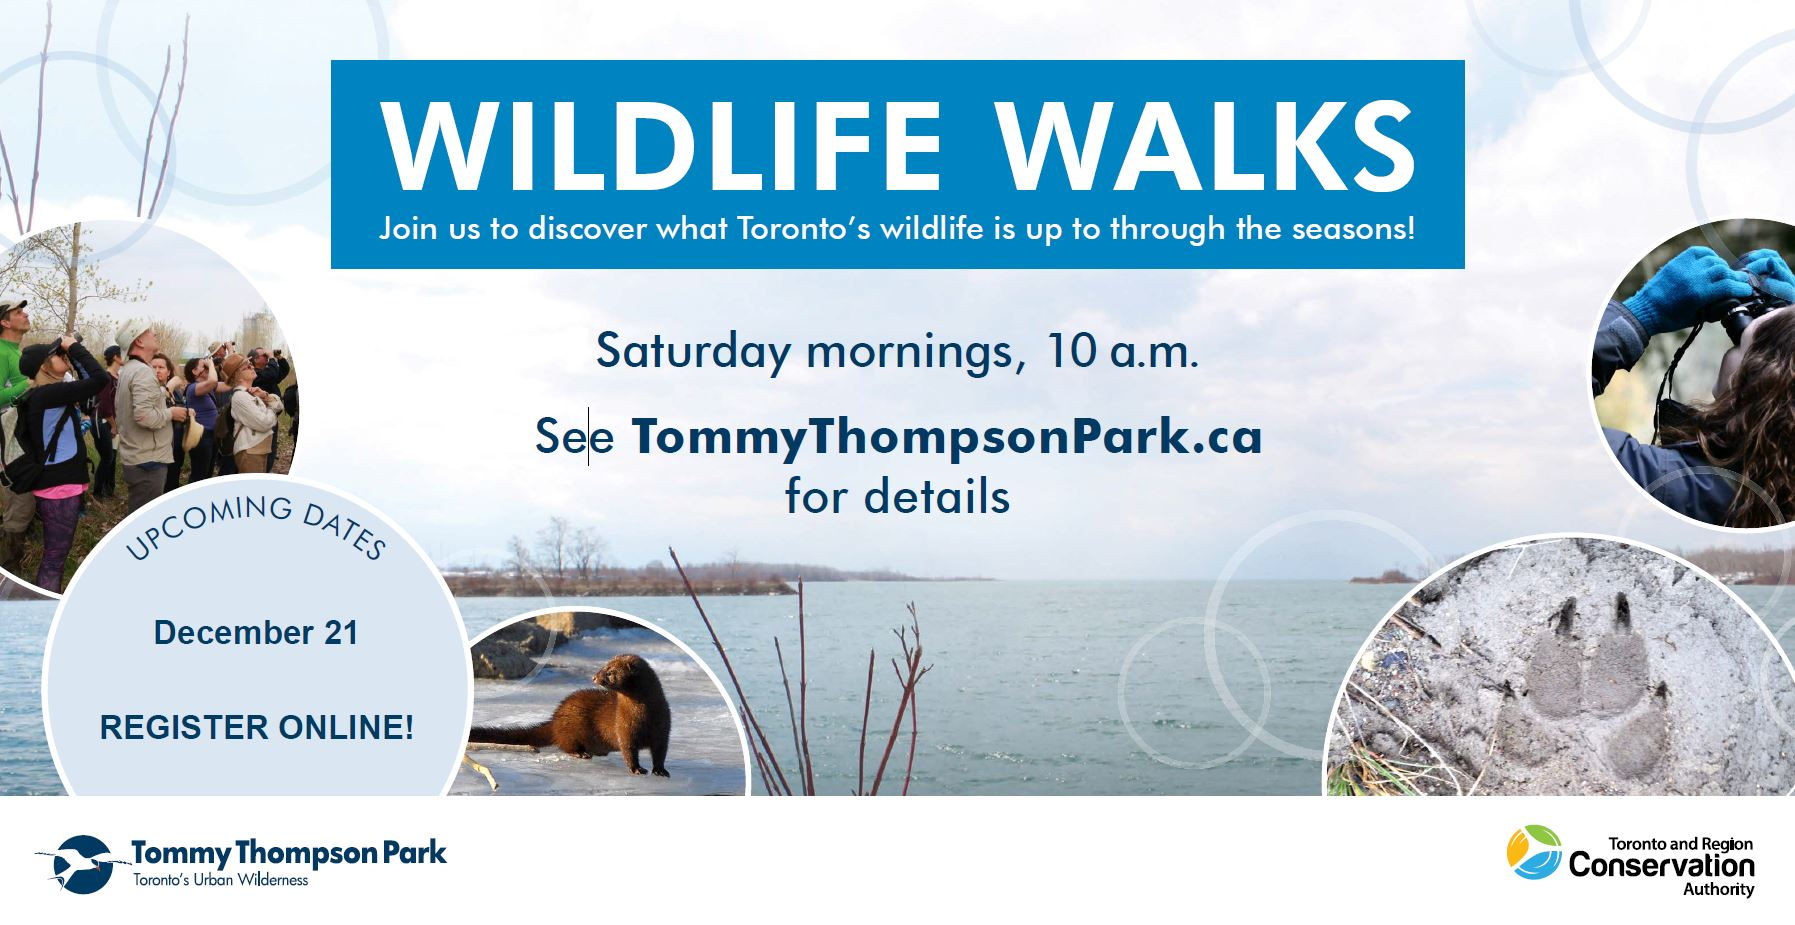 Tommy Thompson Park Wildlife Walks postcard